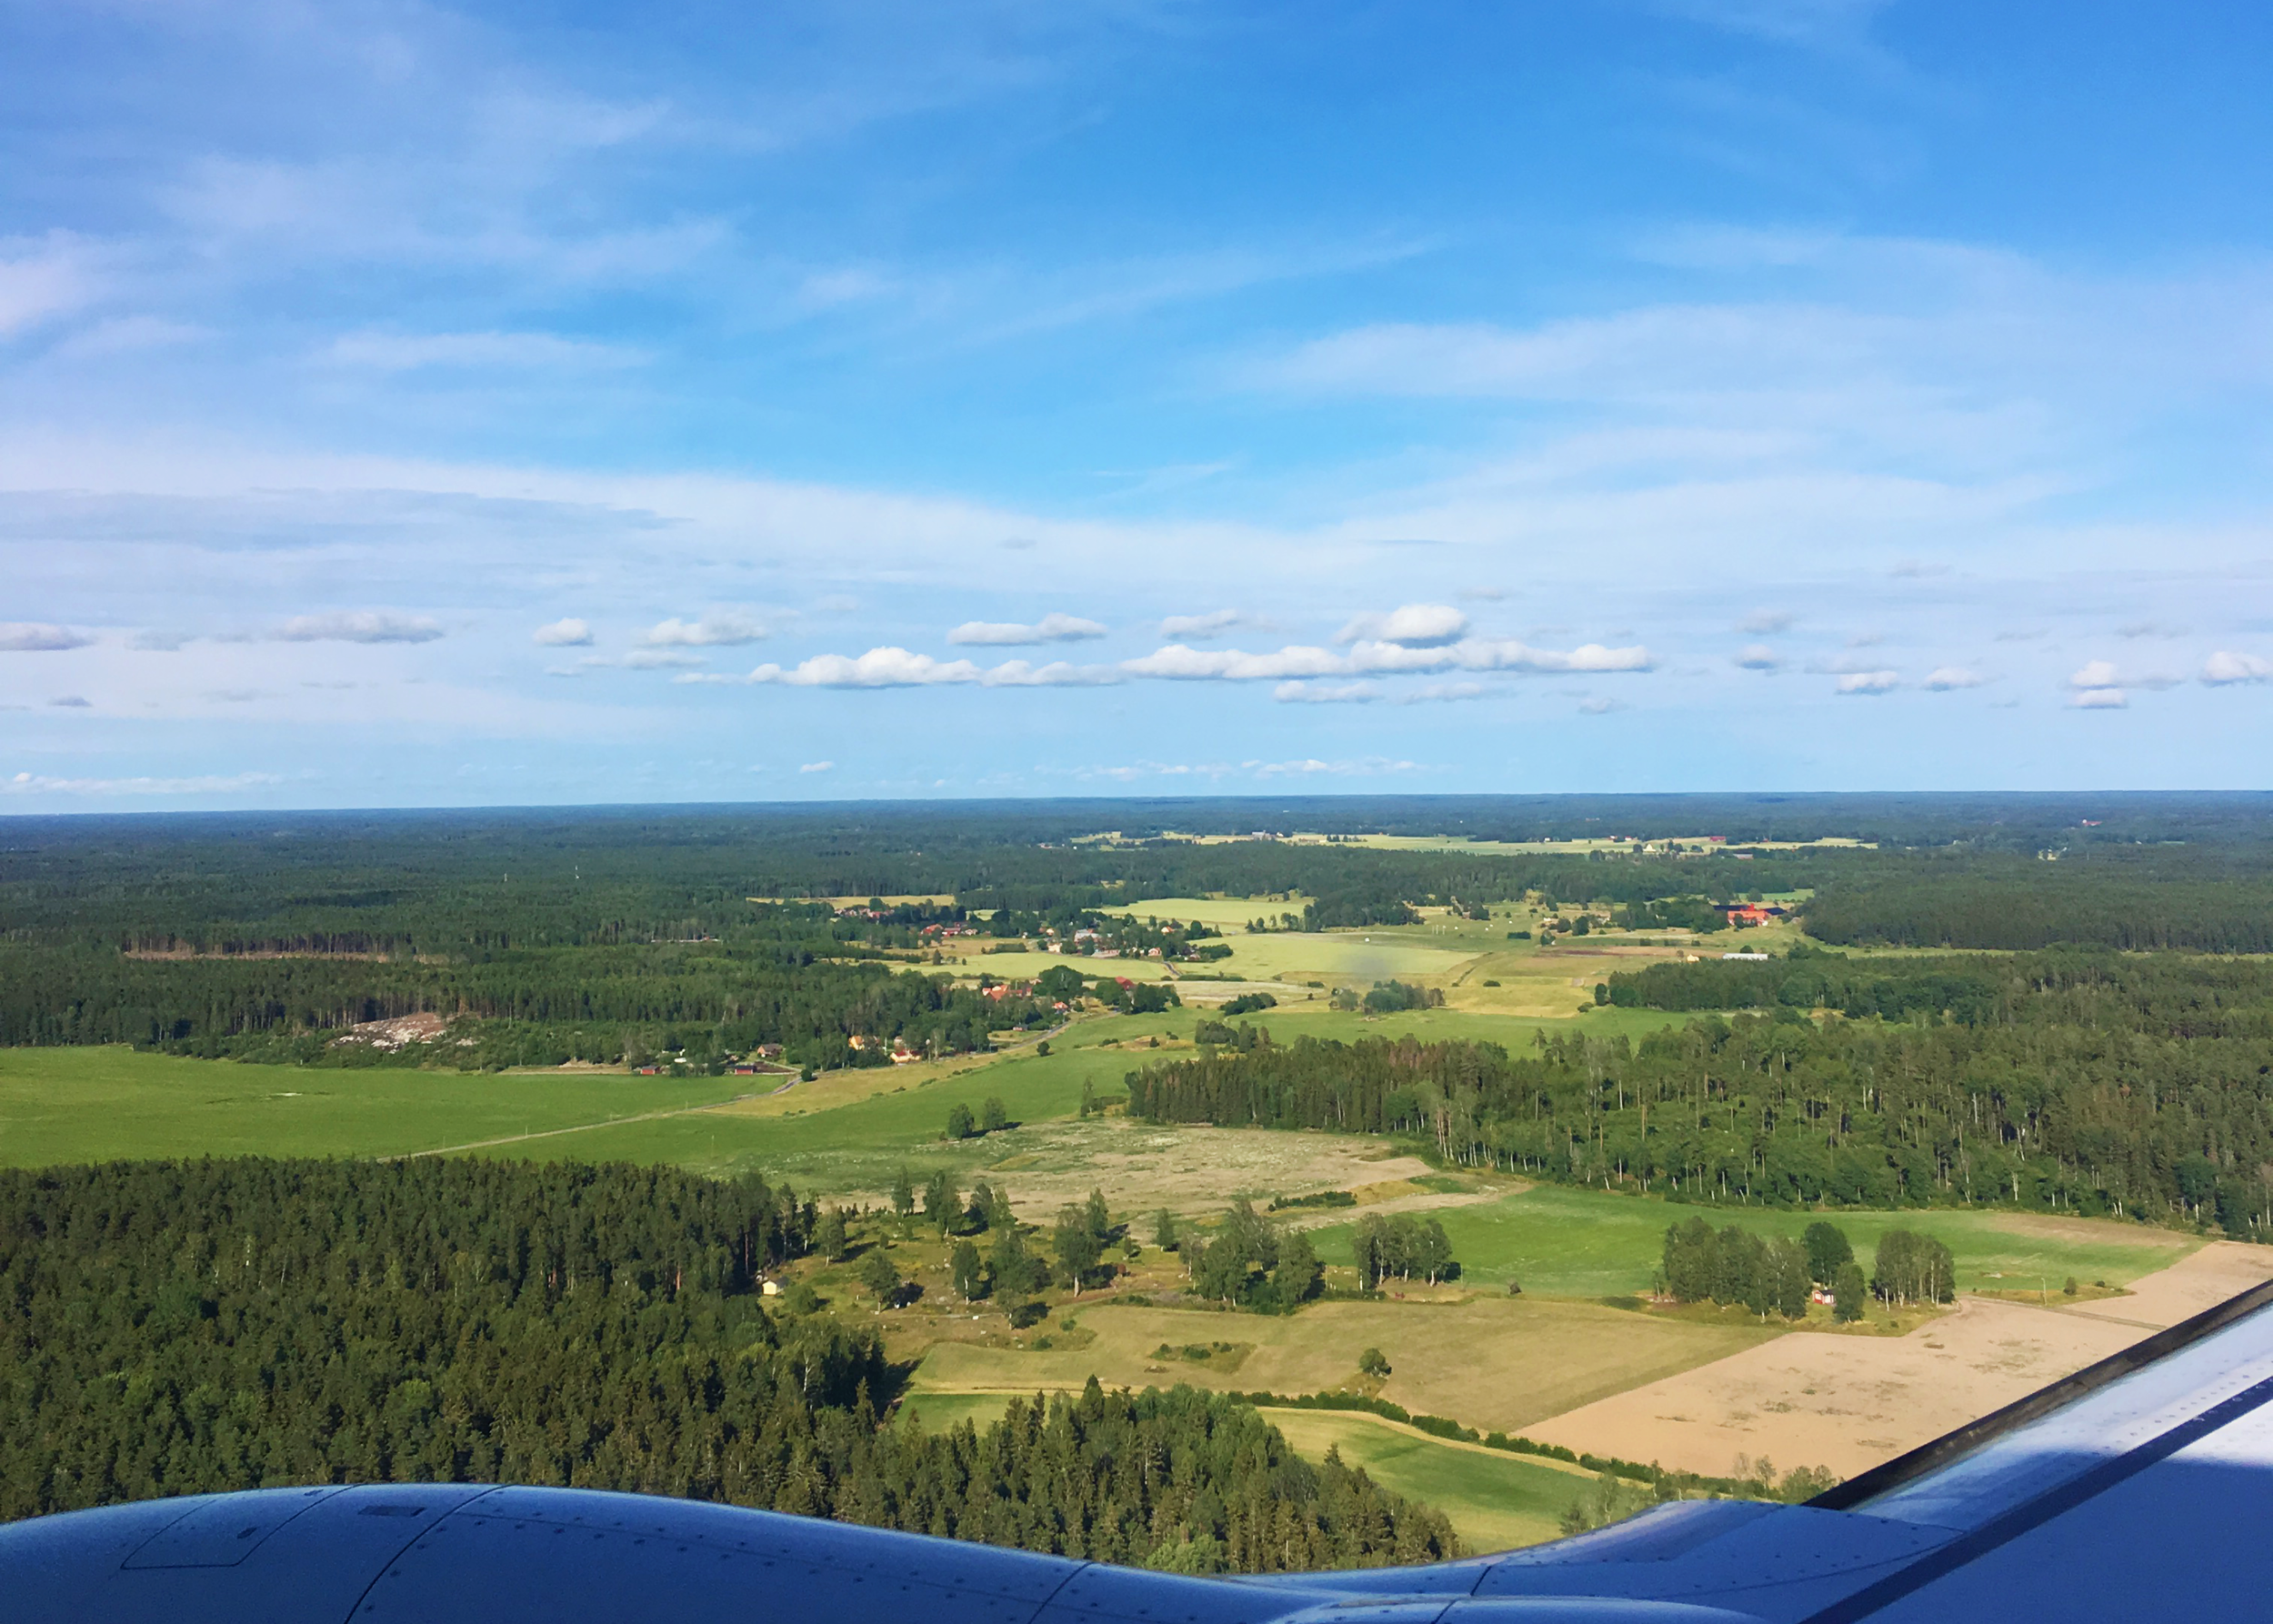 A very nice day to fly back home to Sweden…